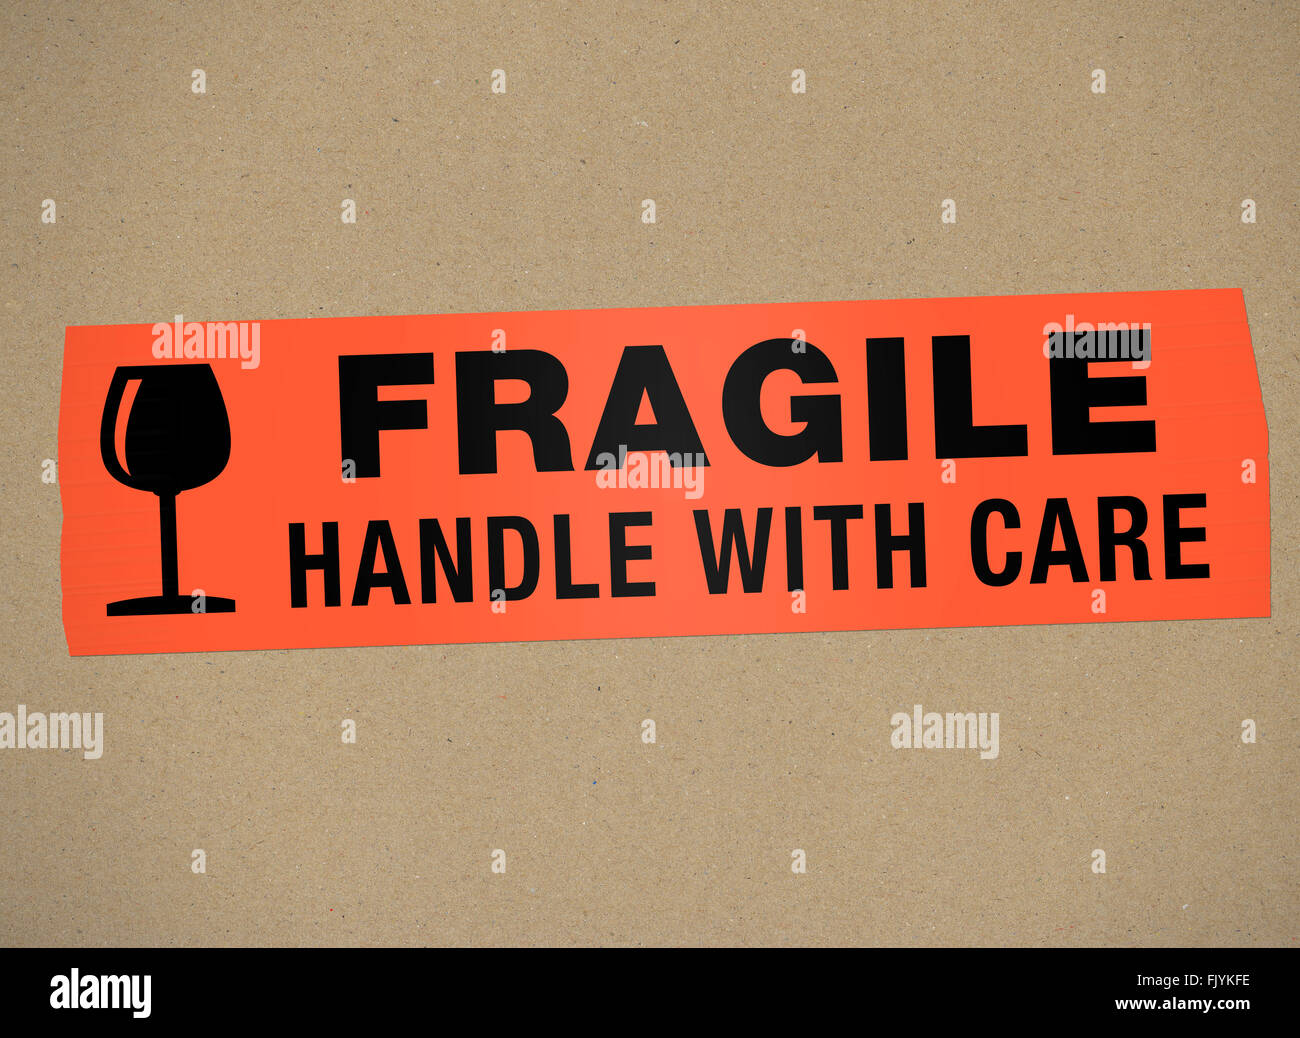 cardboard - Fragile Handle with car - Stock Image